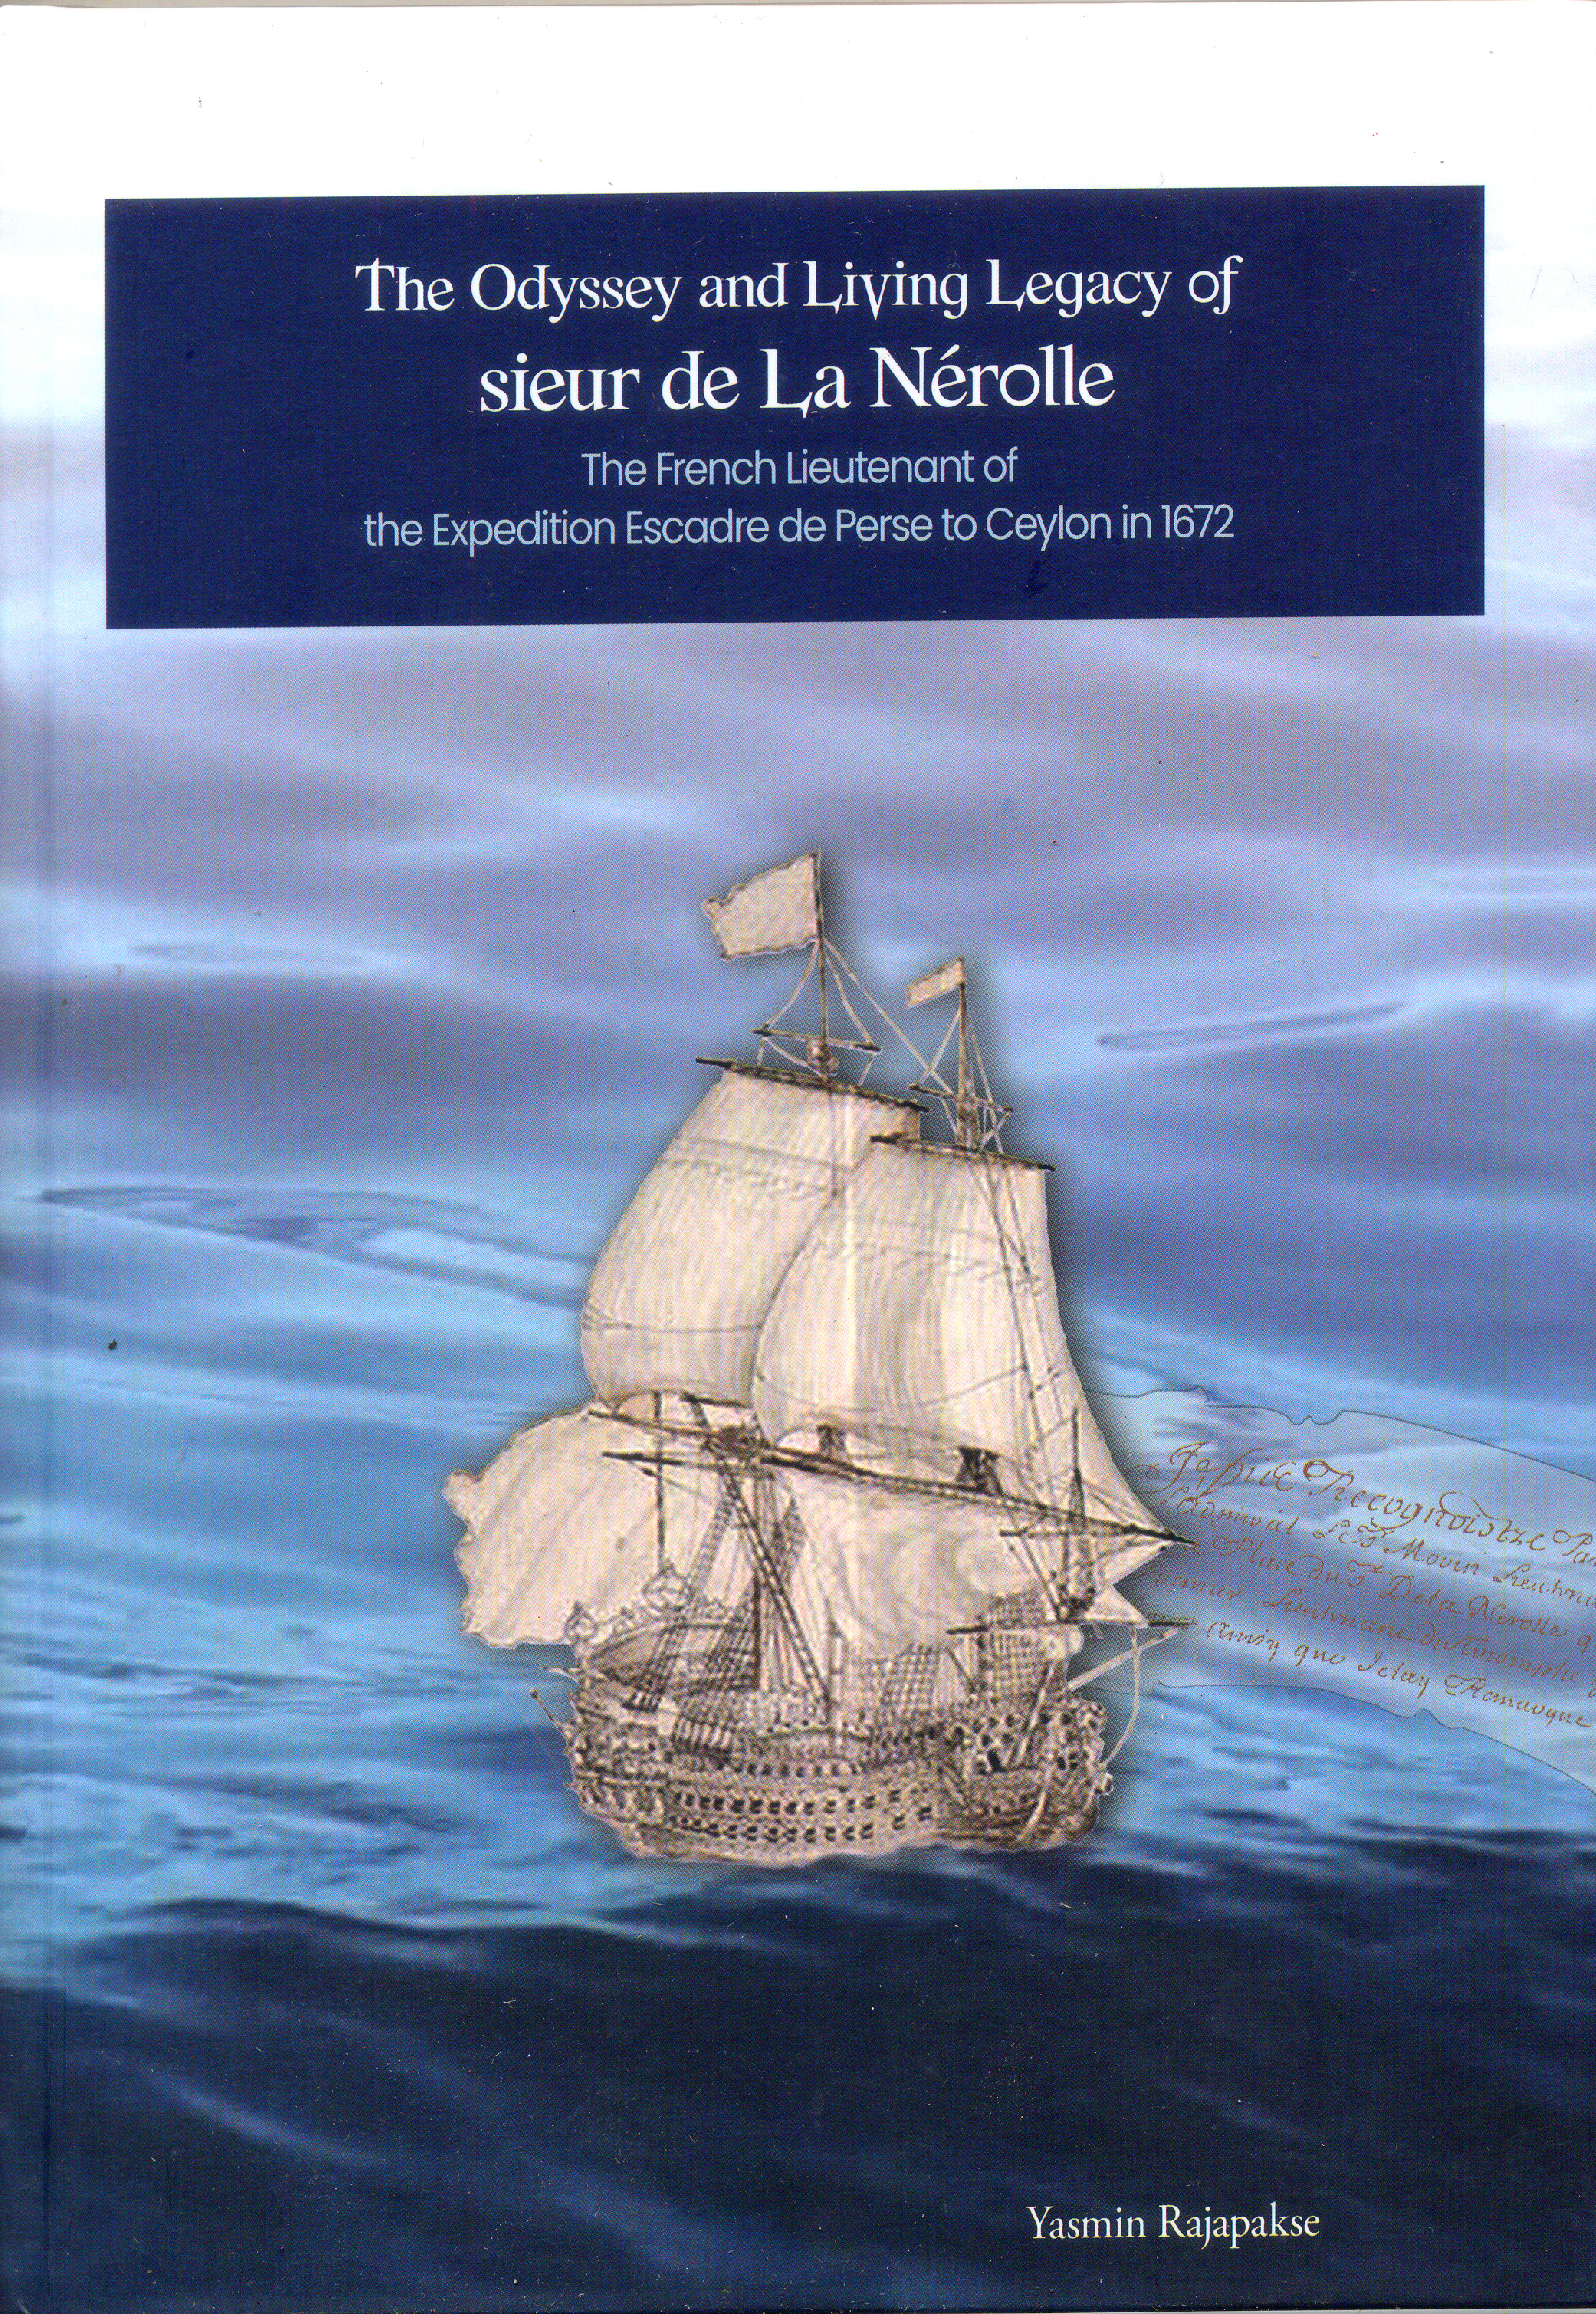 Odyssey and living legacy of sieur de La Nerolle: The french lieutenant of the expedition escadre